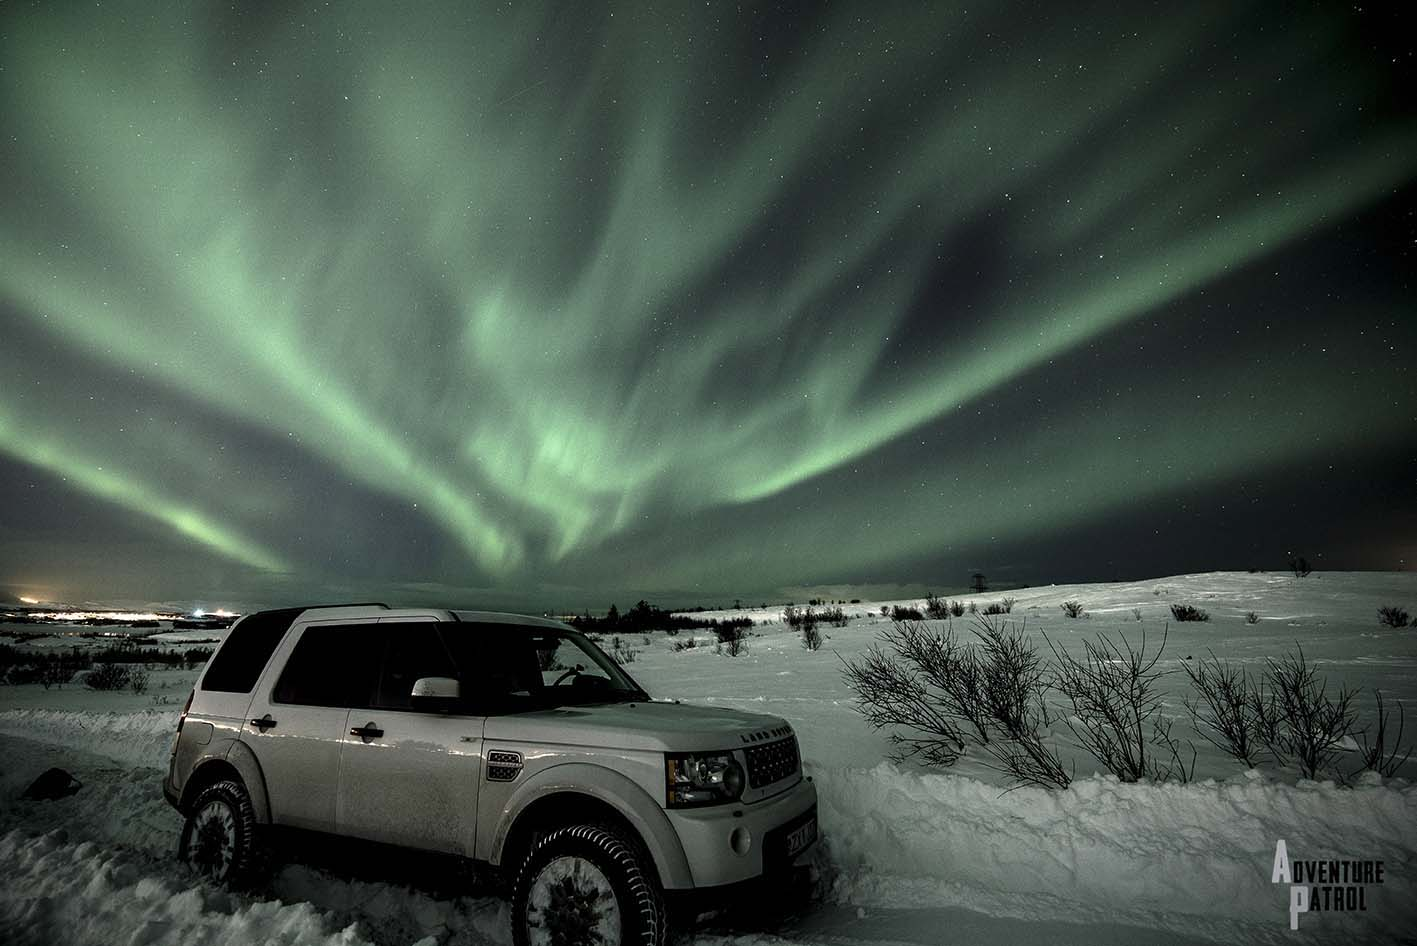 Day Adventures Combined with Northern Lights in the Evening